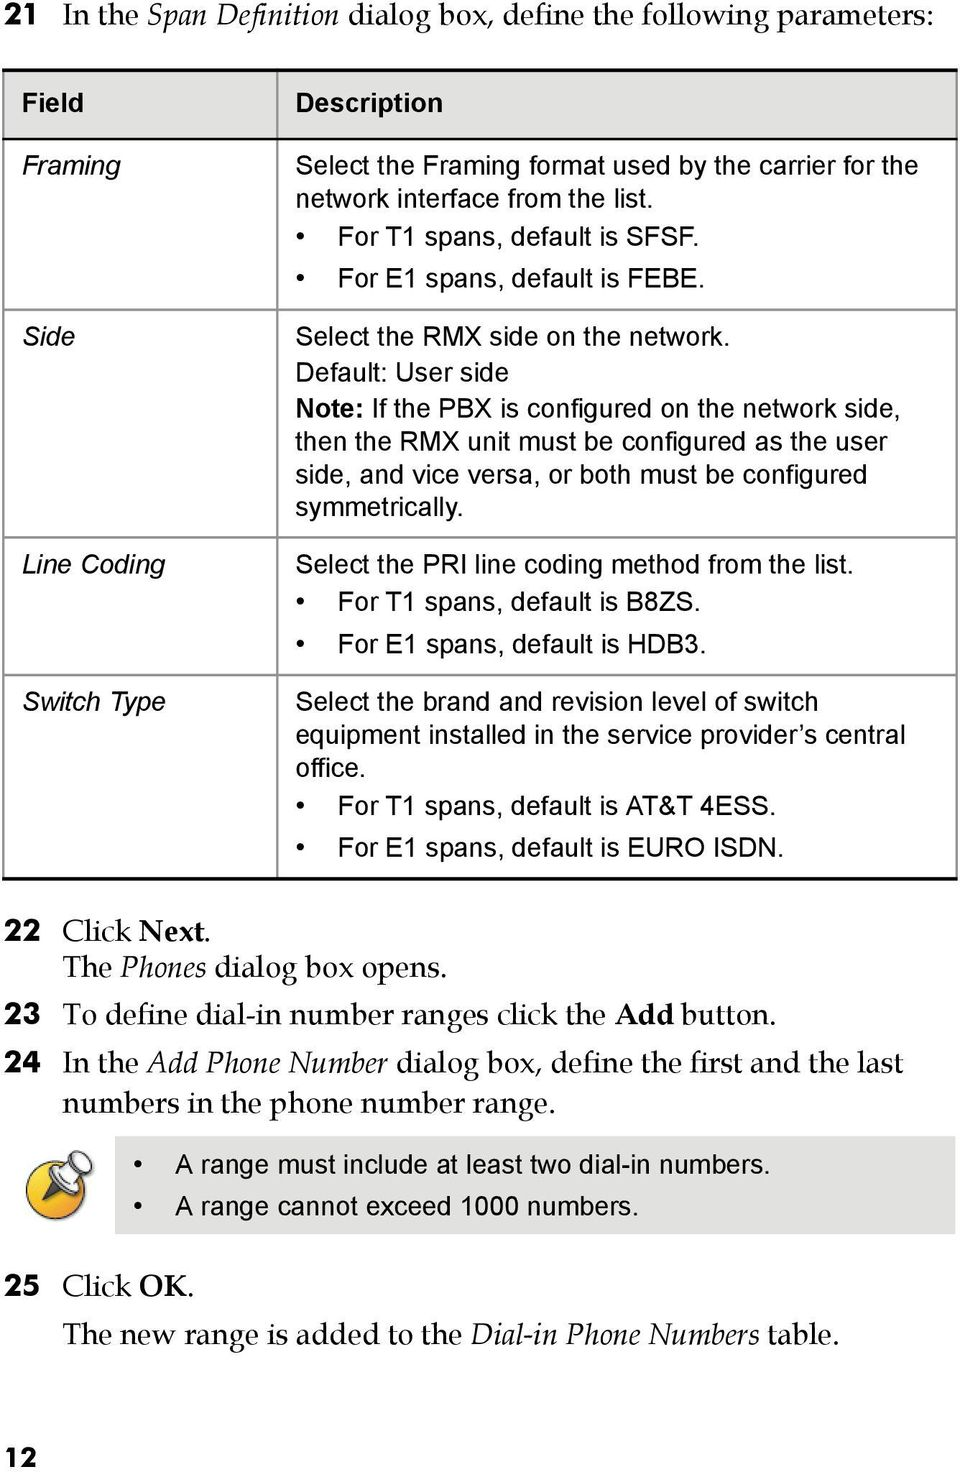 Rmx 2000 Installation Configuration Guide Pdf Eircom Socket Wiring Diagram Default User Side Note If The Pbx Is Configured On Network